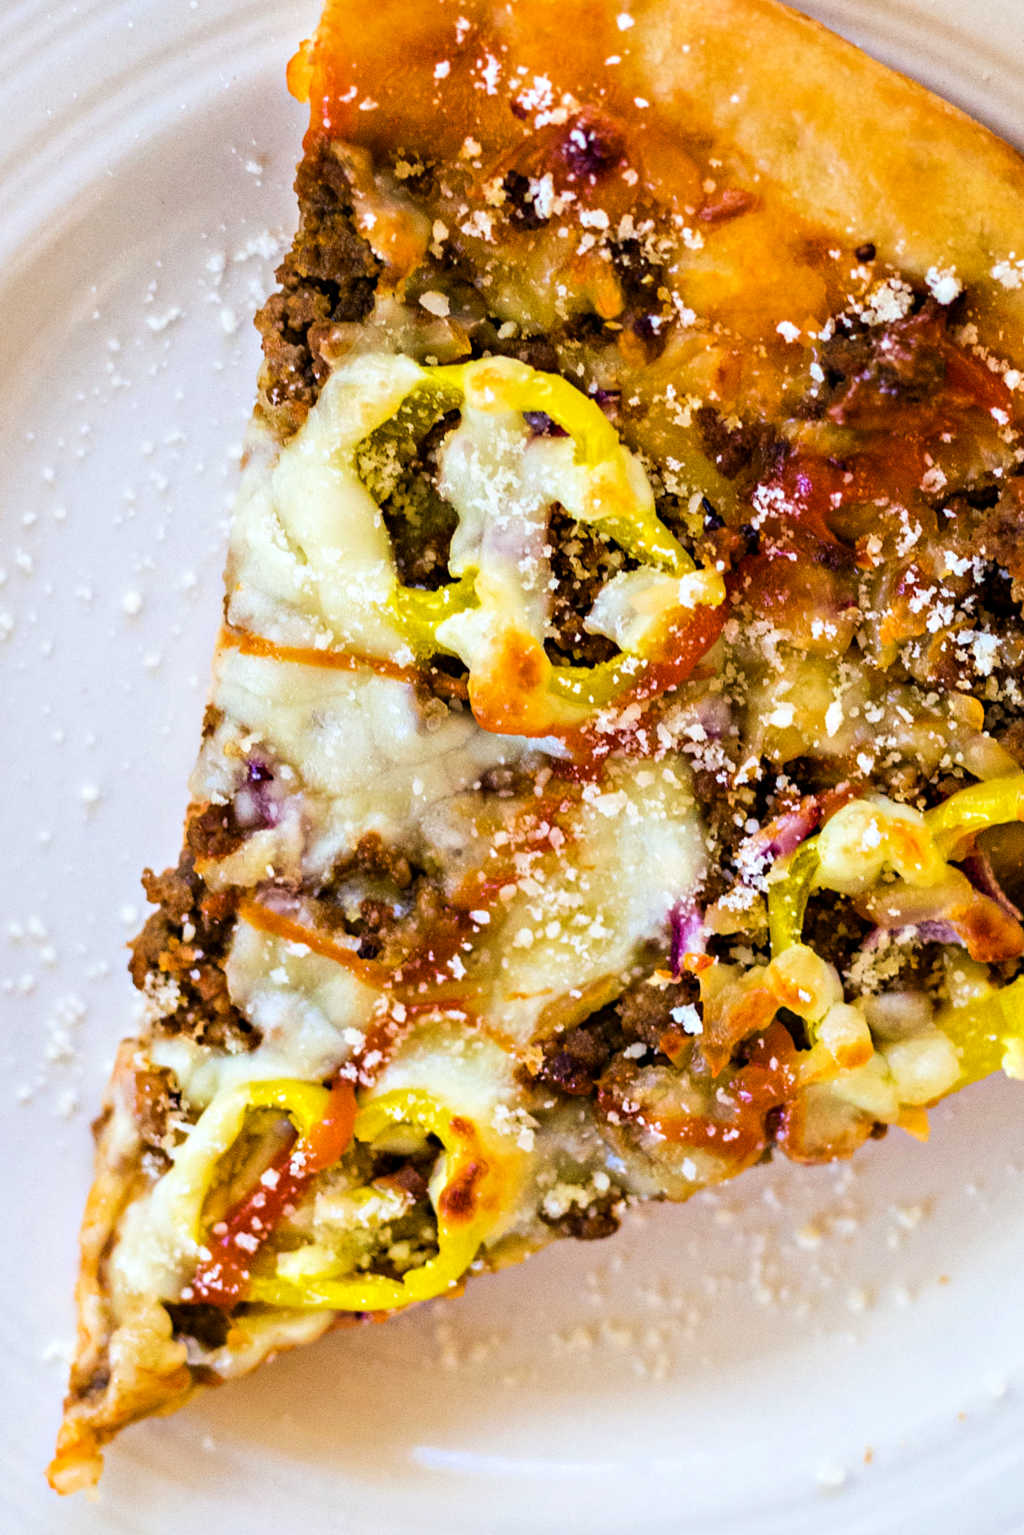 close up of a slice of cheeseburger pizza